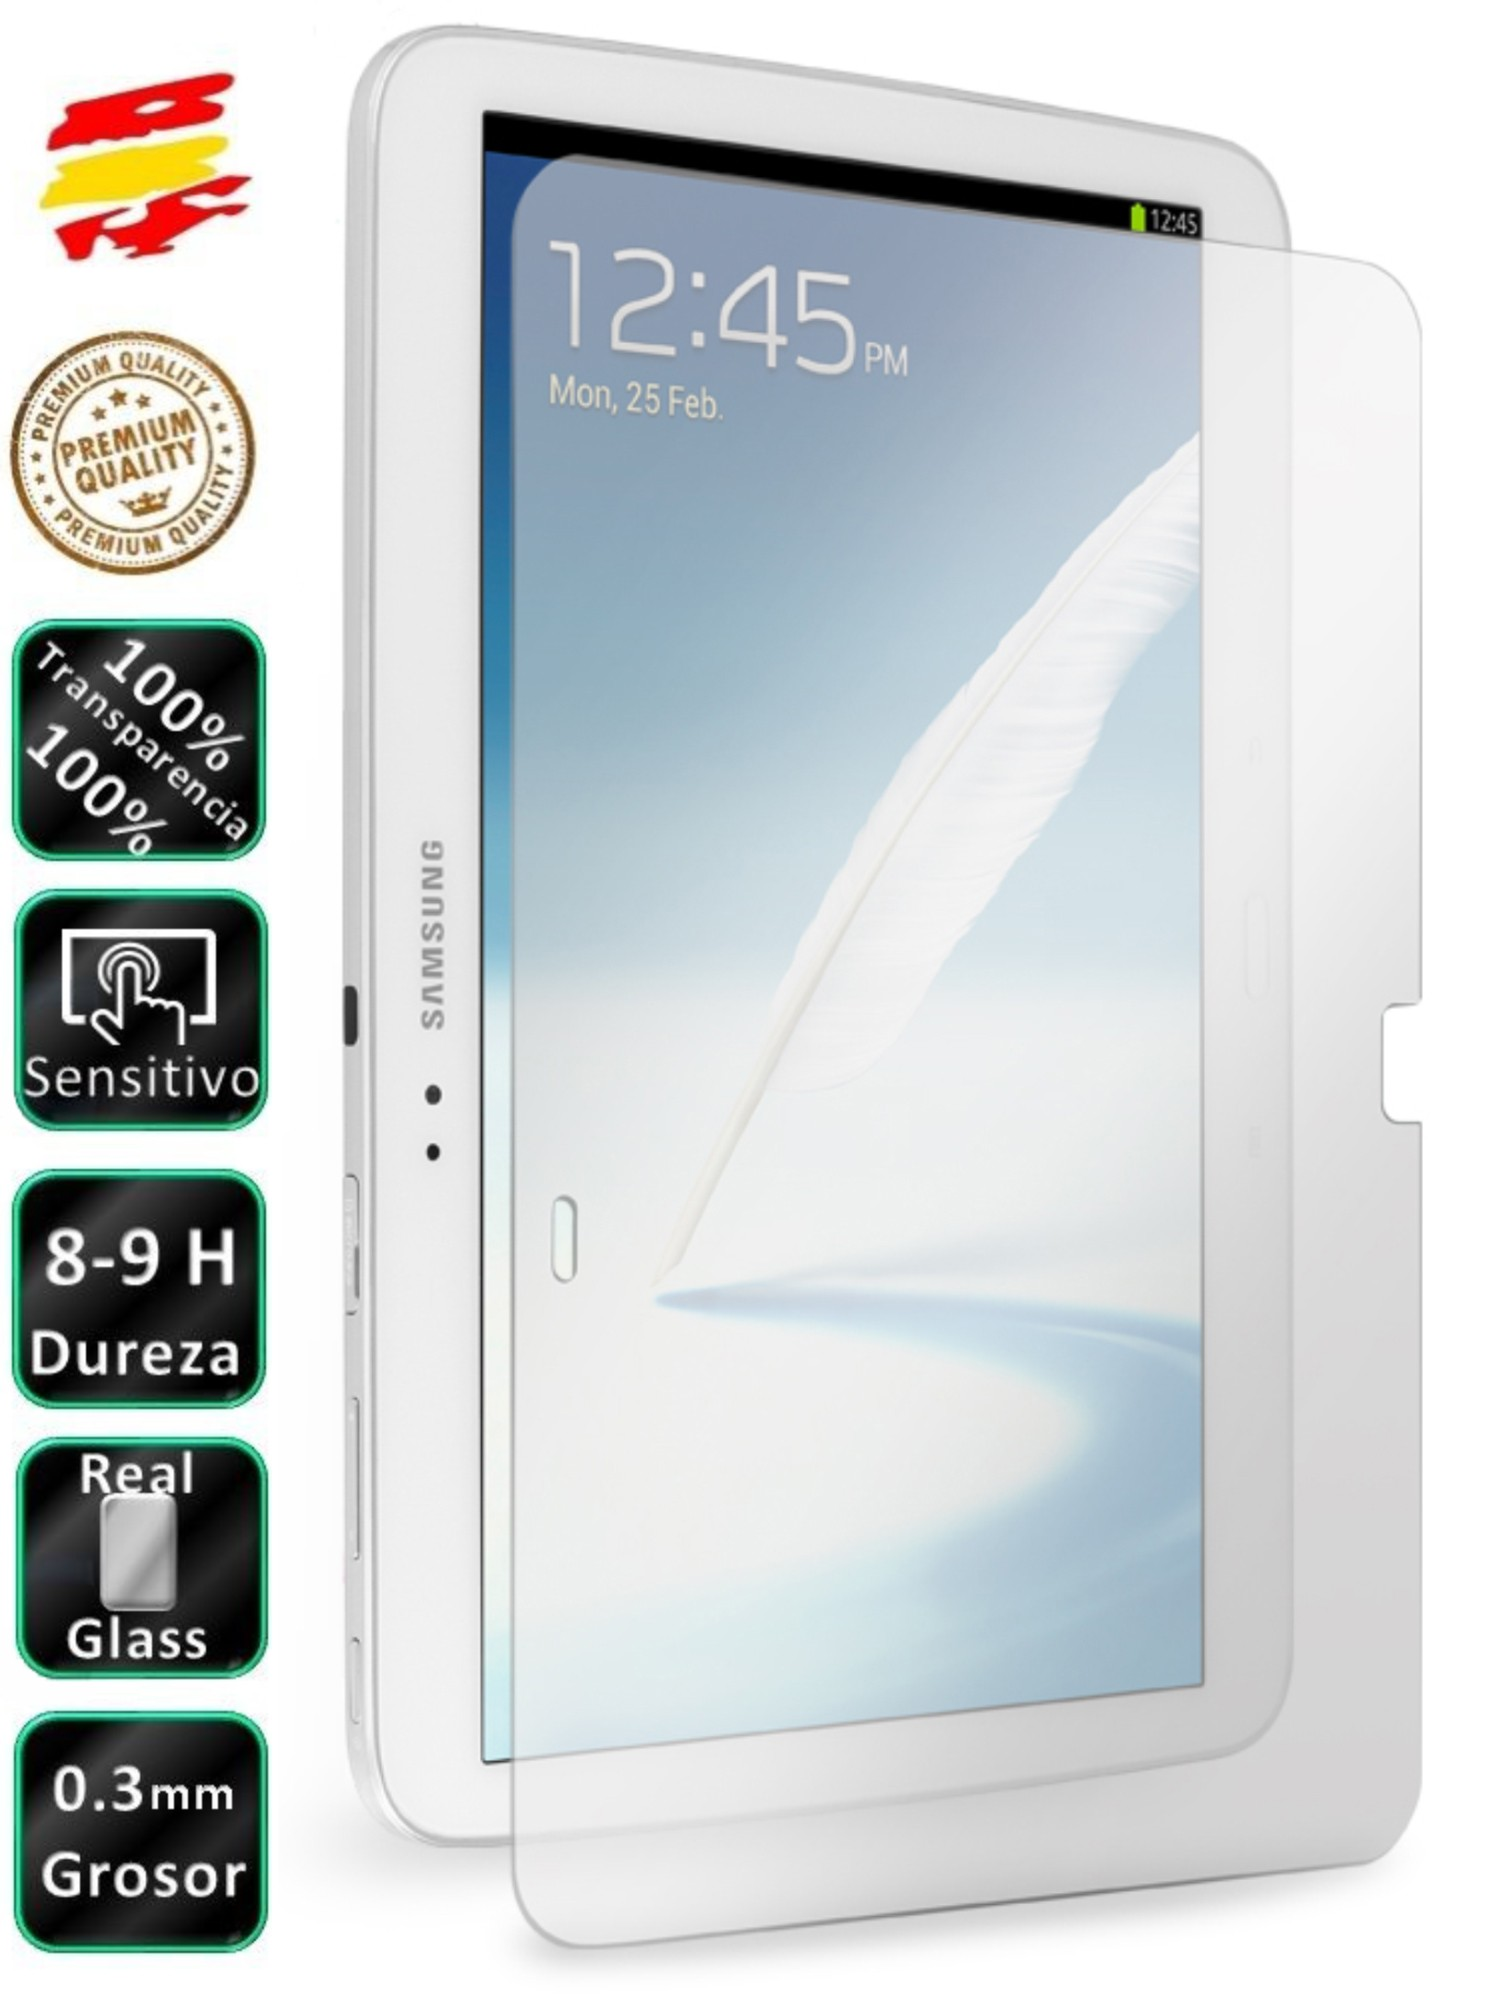 Protector Samsung Galaxy Tab 3 10.1 P5200 Tempered Glass Screen Tablet